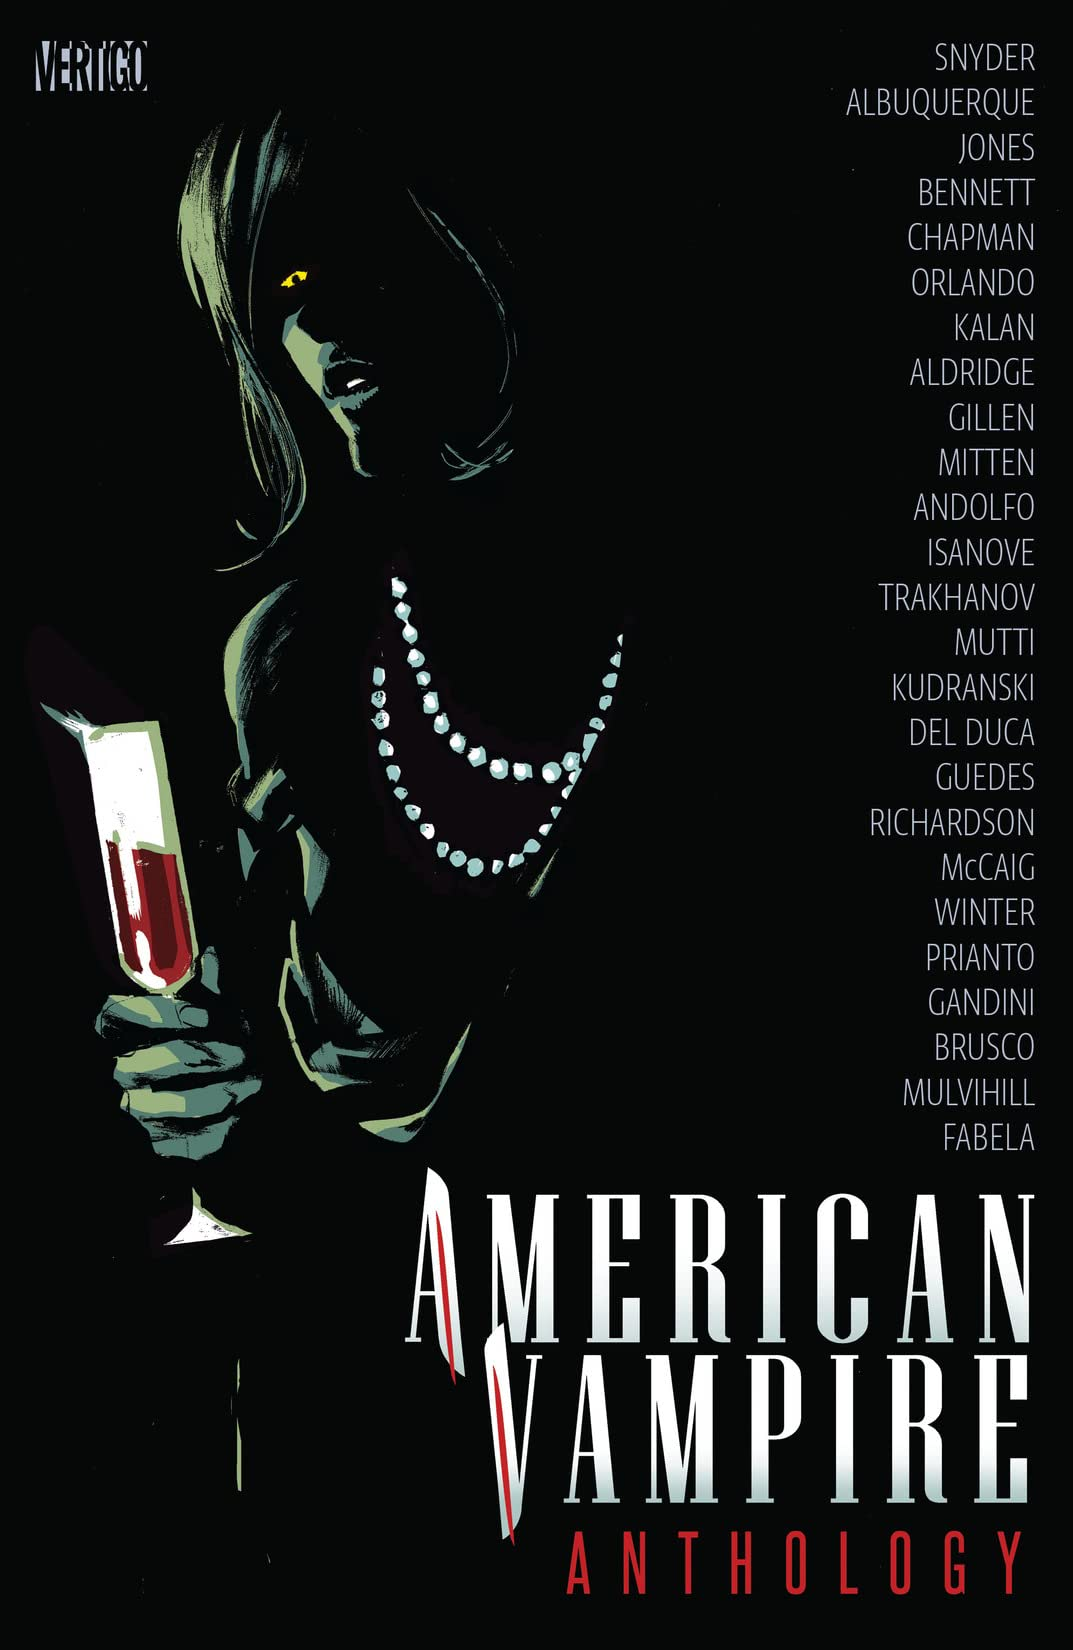 American Vampire: Anthology #2